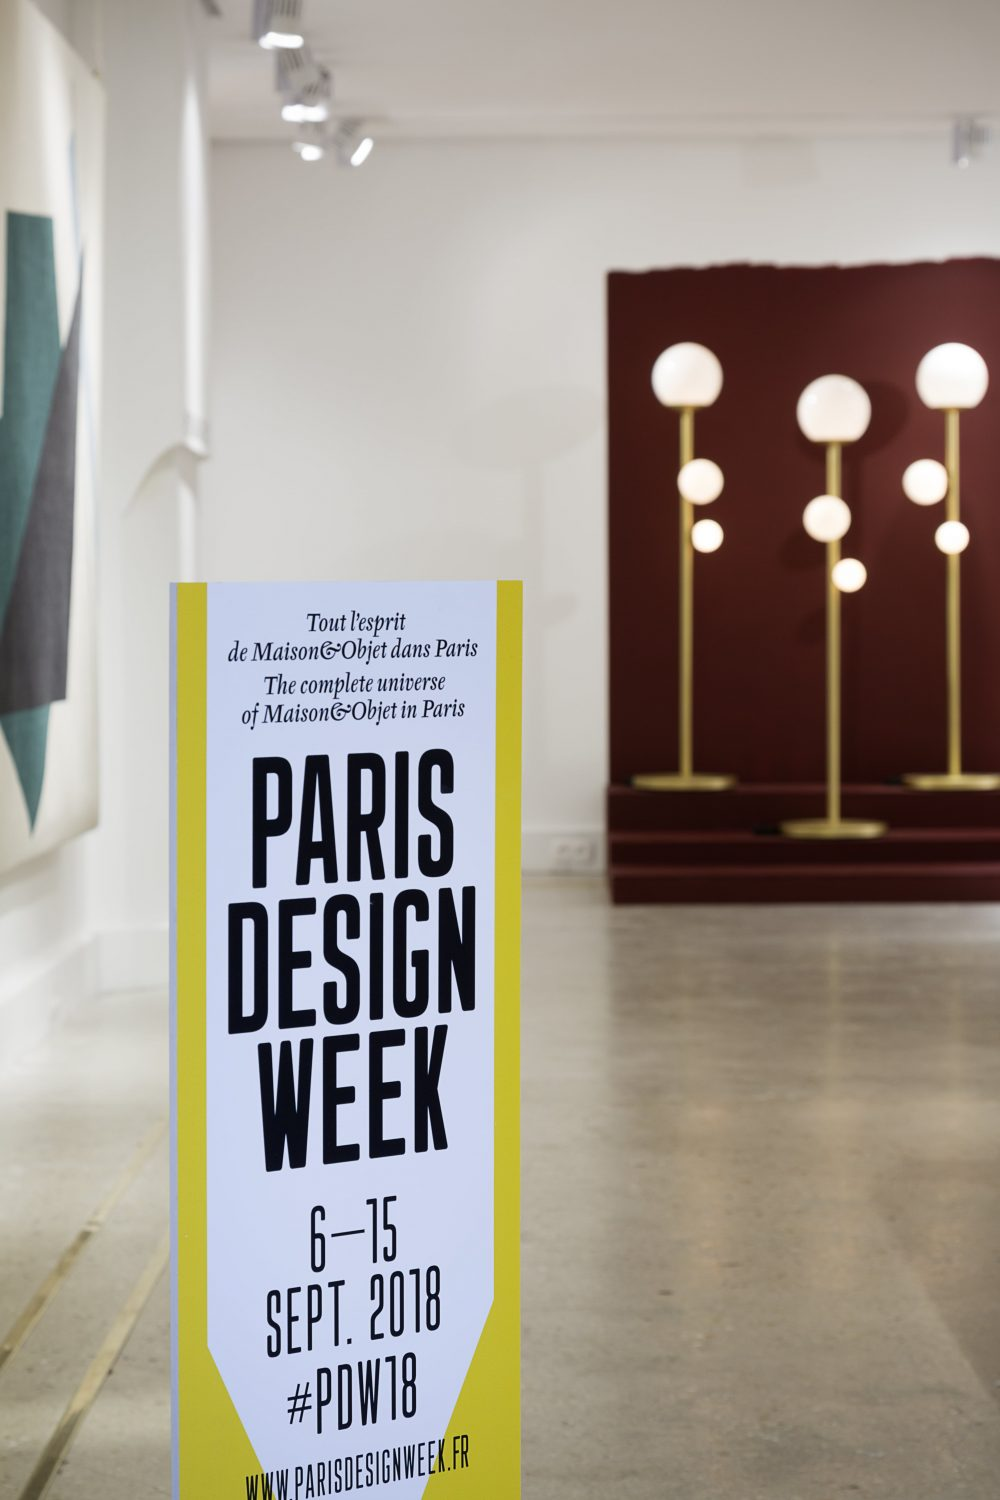 Paris Design Week 2018, launching of www.melissareganeditions.com